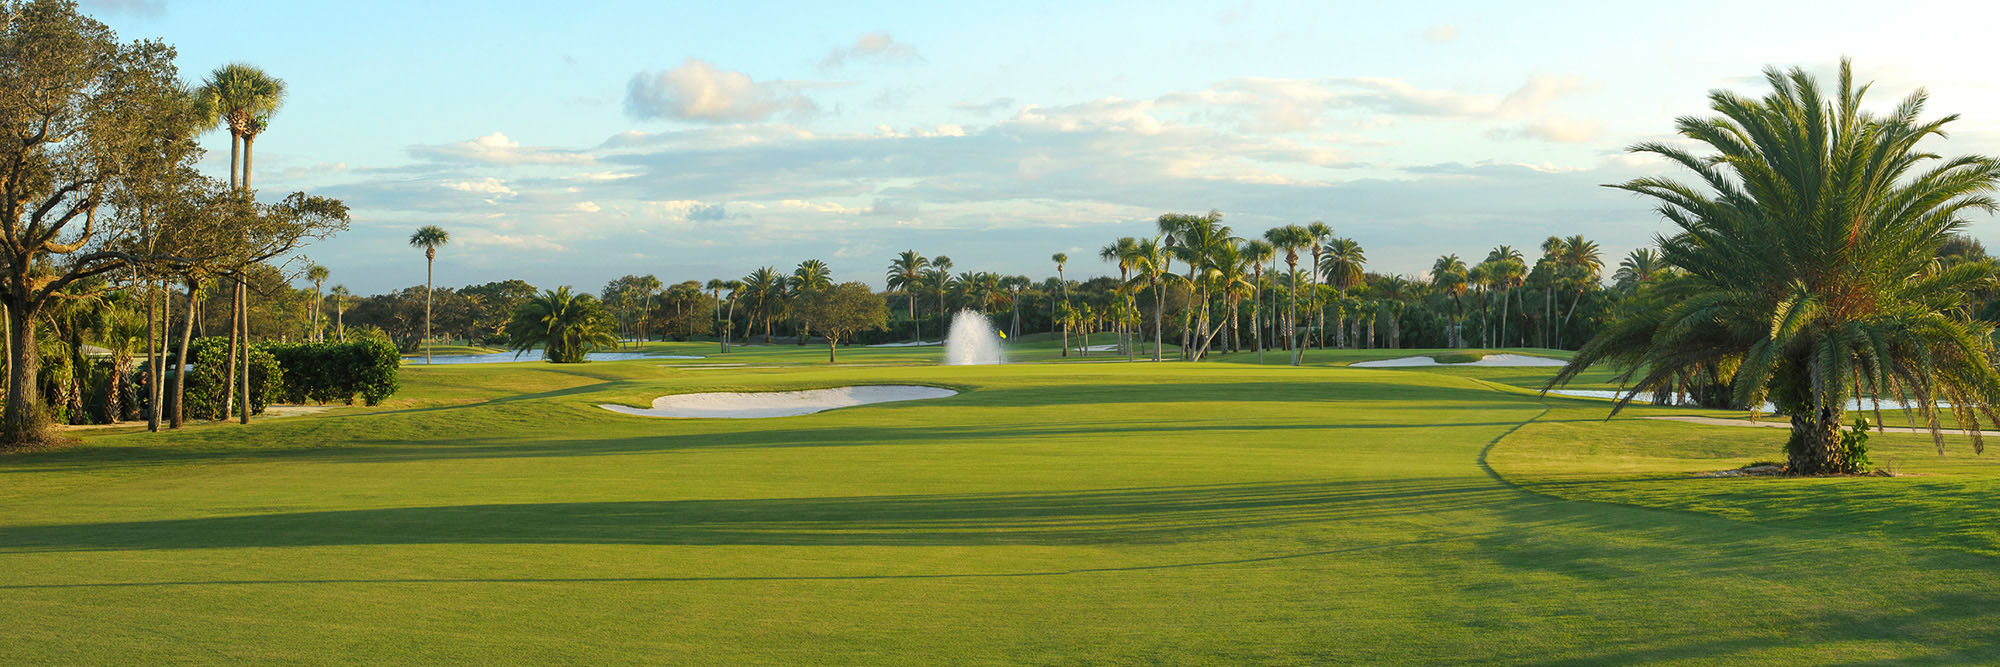 Golf Course Image - Riomar No. 10